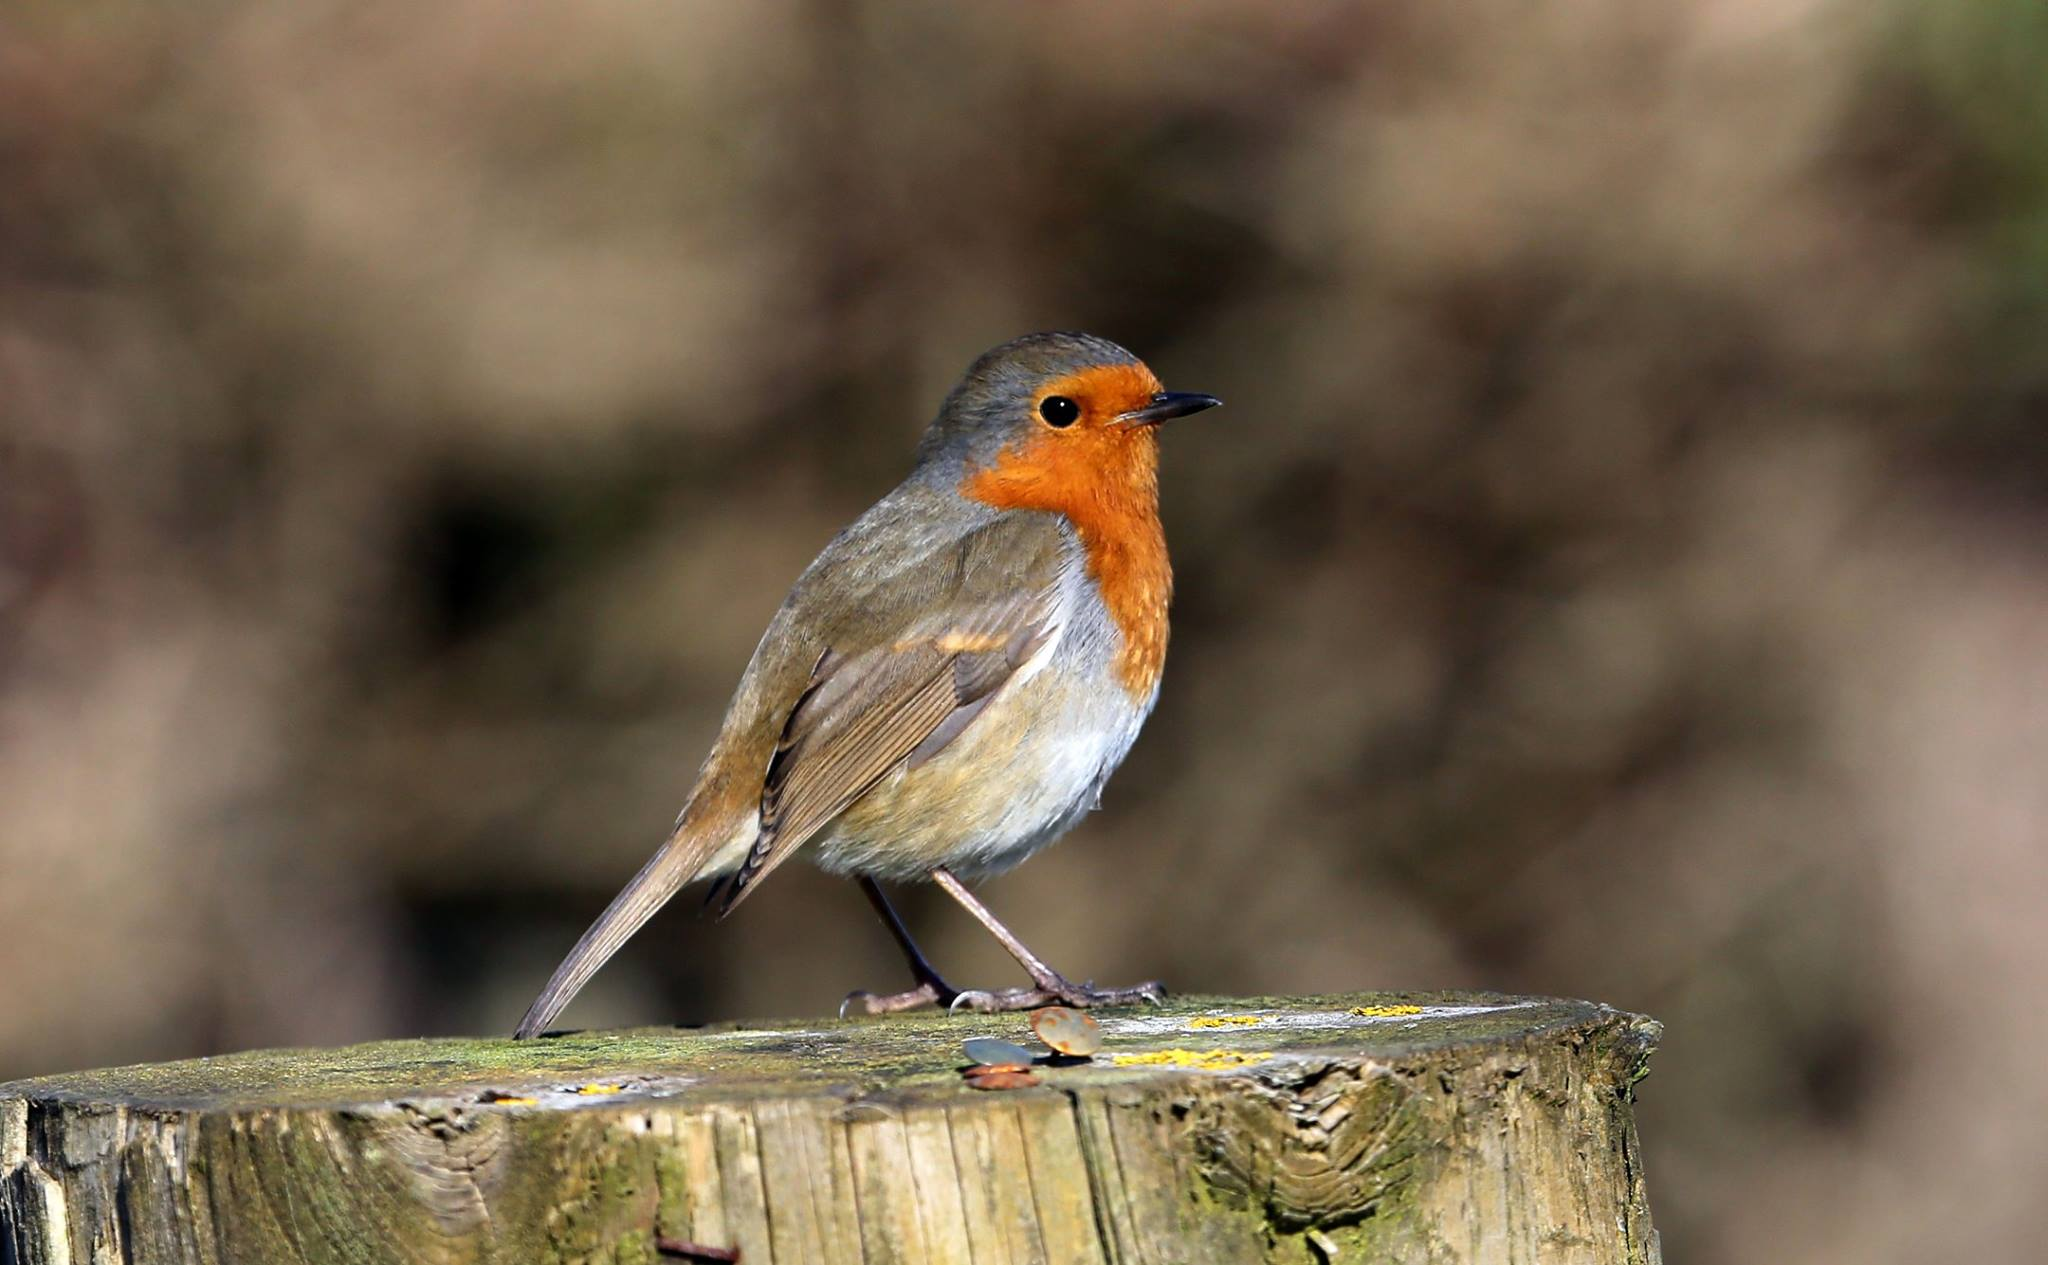 Robin at Seaton Wetlands